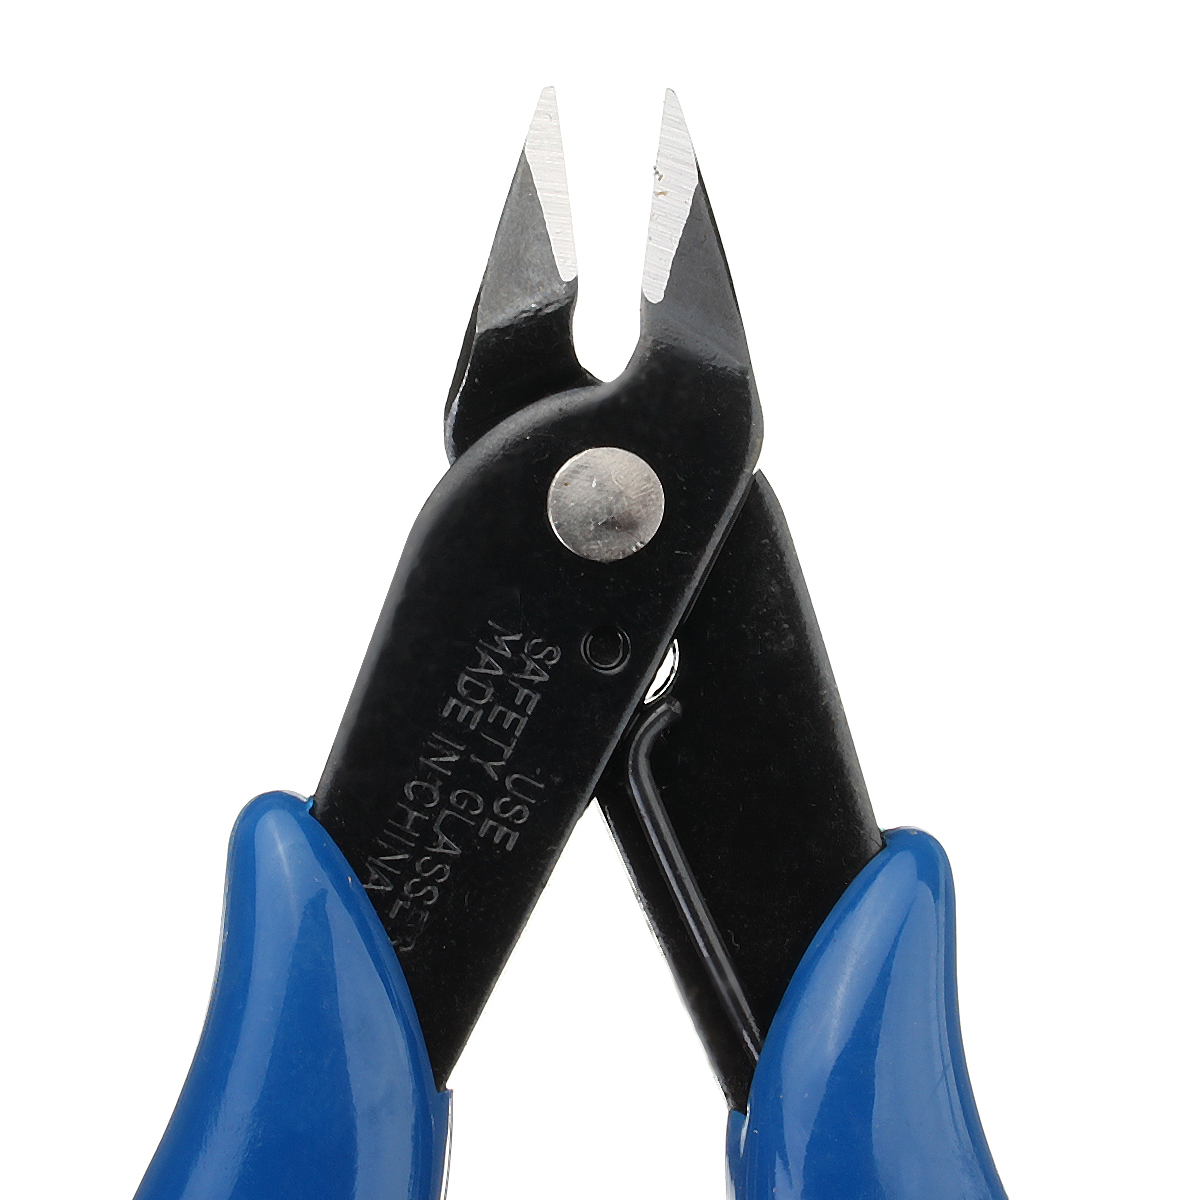 Pliers Nipper H Practical Electrical Wire Cable Cutter Cutting Side Snips Flush Pliers Mini Pliers